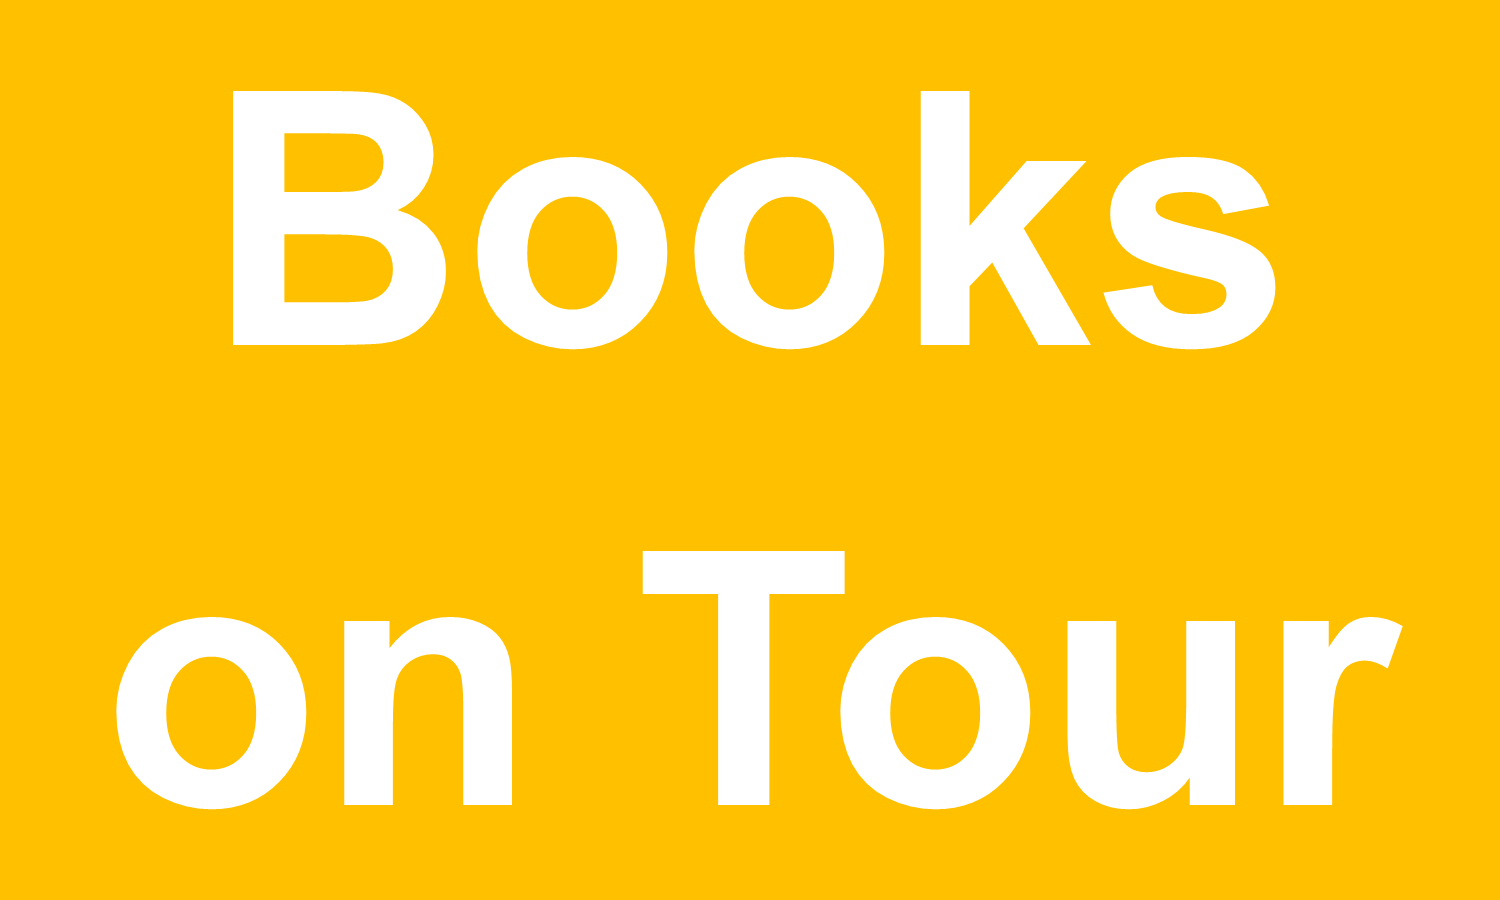 books-on-tour-buttons-2022.png